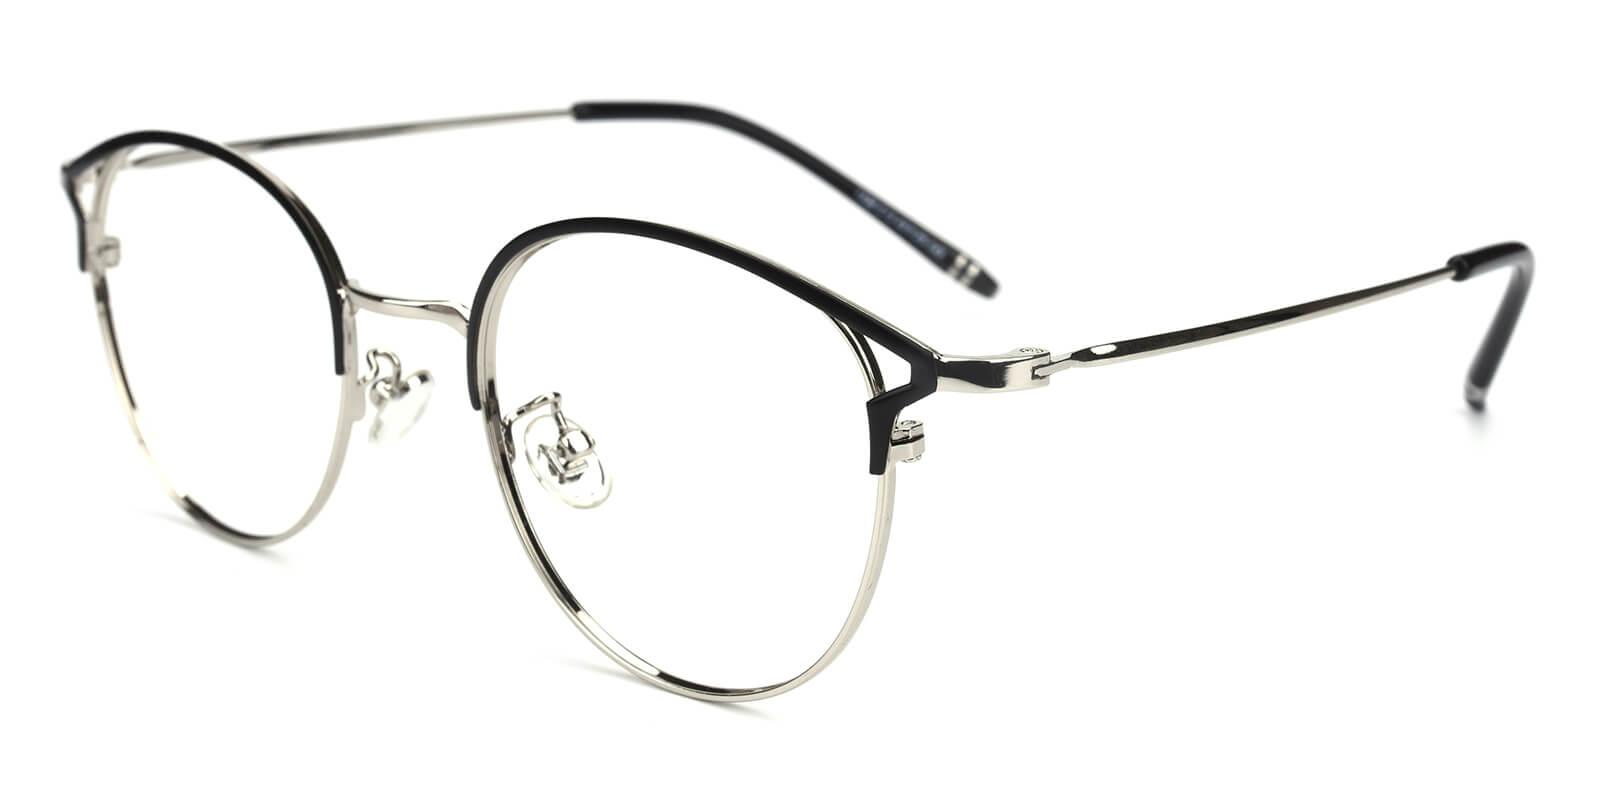 Brace-Silver-Browline-Metal-Eyeglasses-additional1